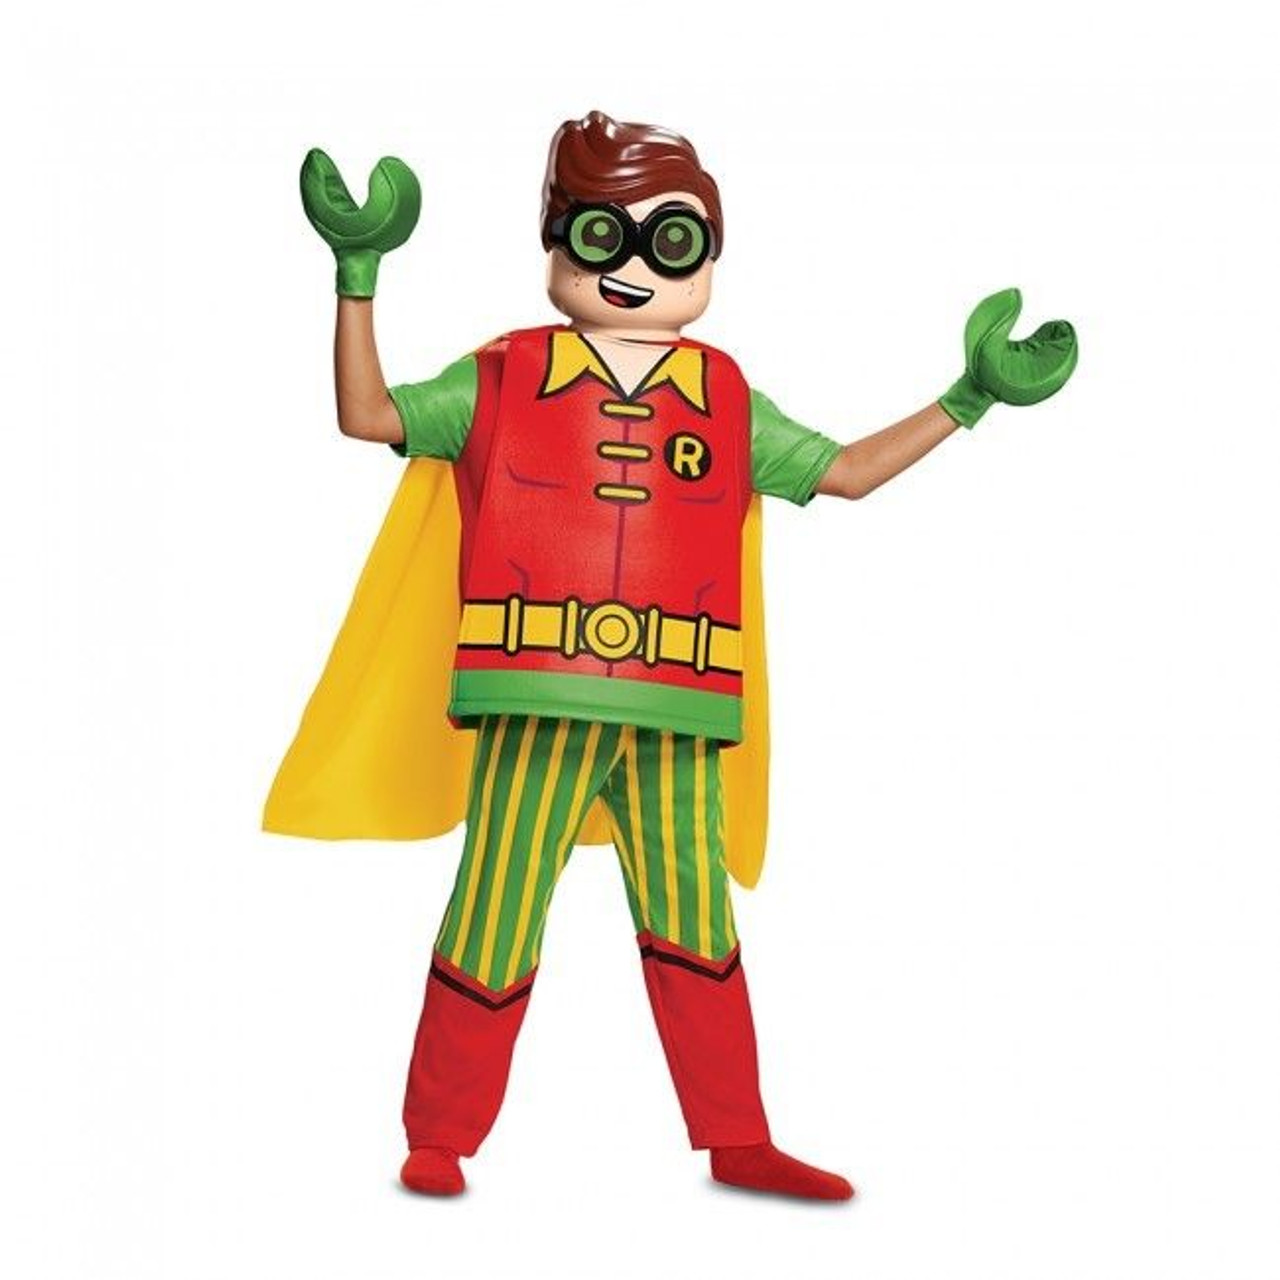 NEW Boys Size Medium 7-8 Boys LEGO Batman Movie Deluxe Child Halloween Costume